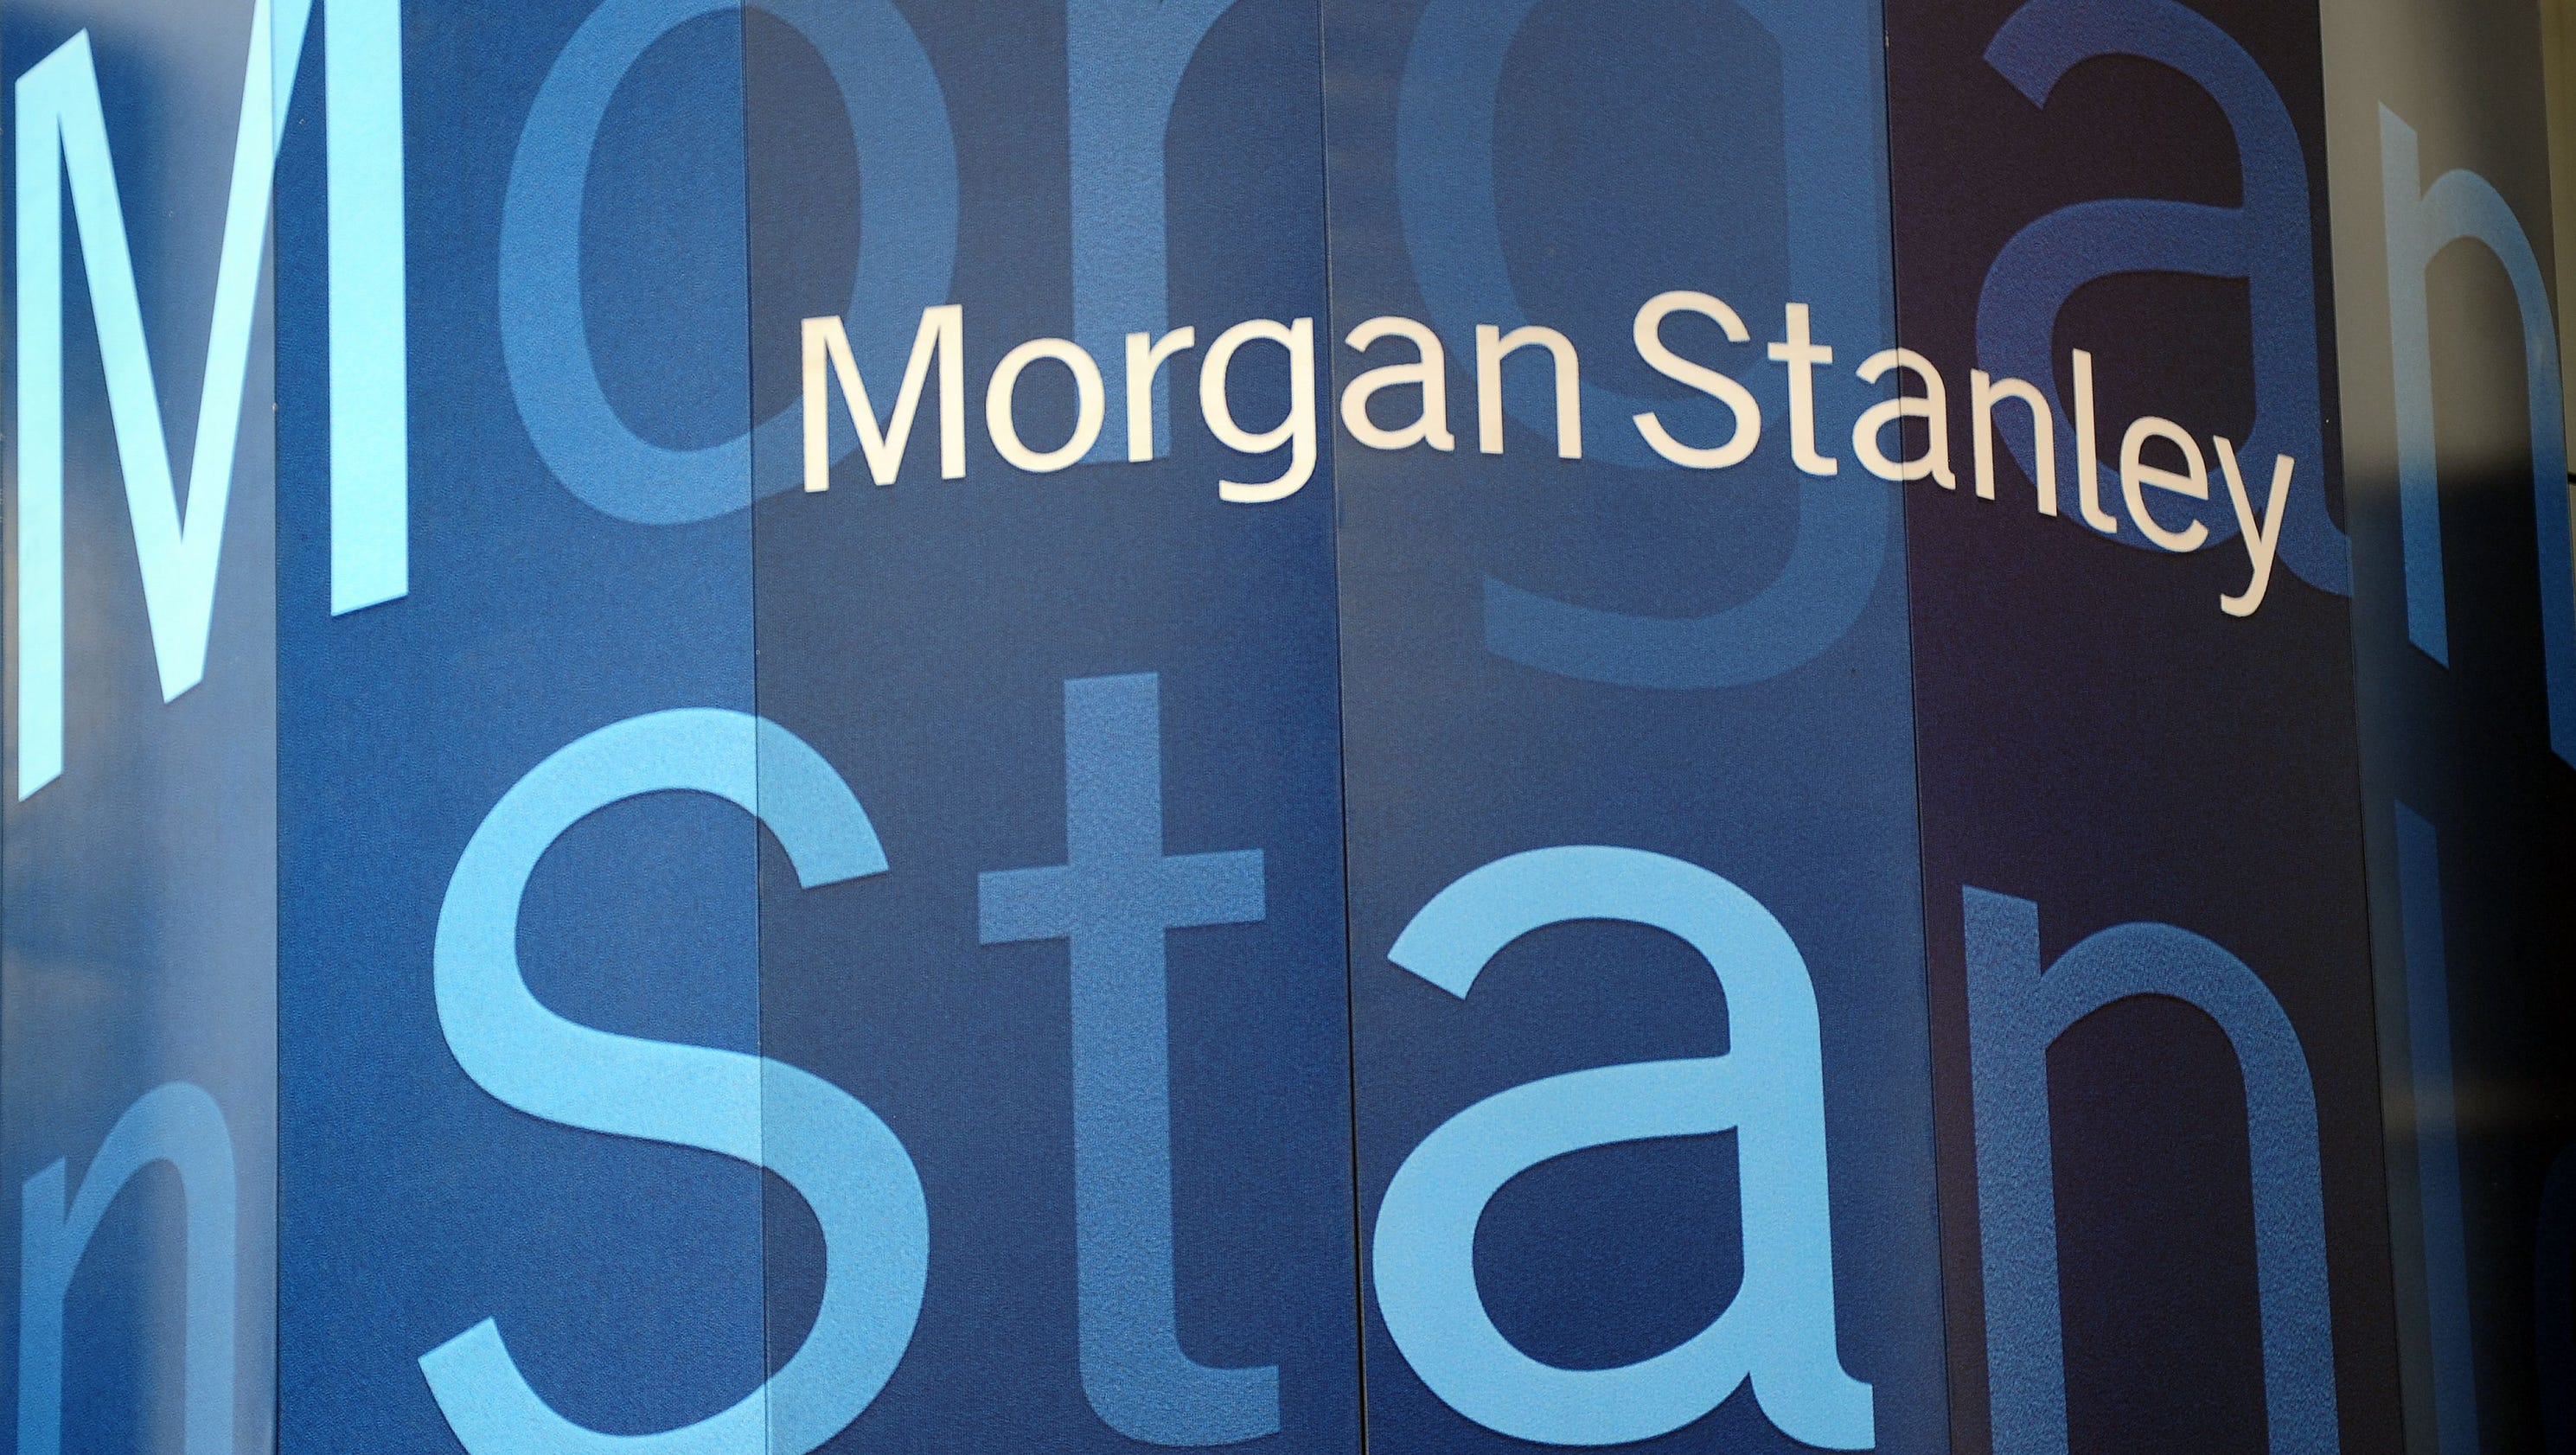 Morgan Stanley S Profits Fall 59 Due To Tax Law